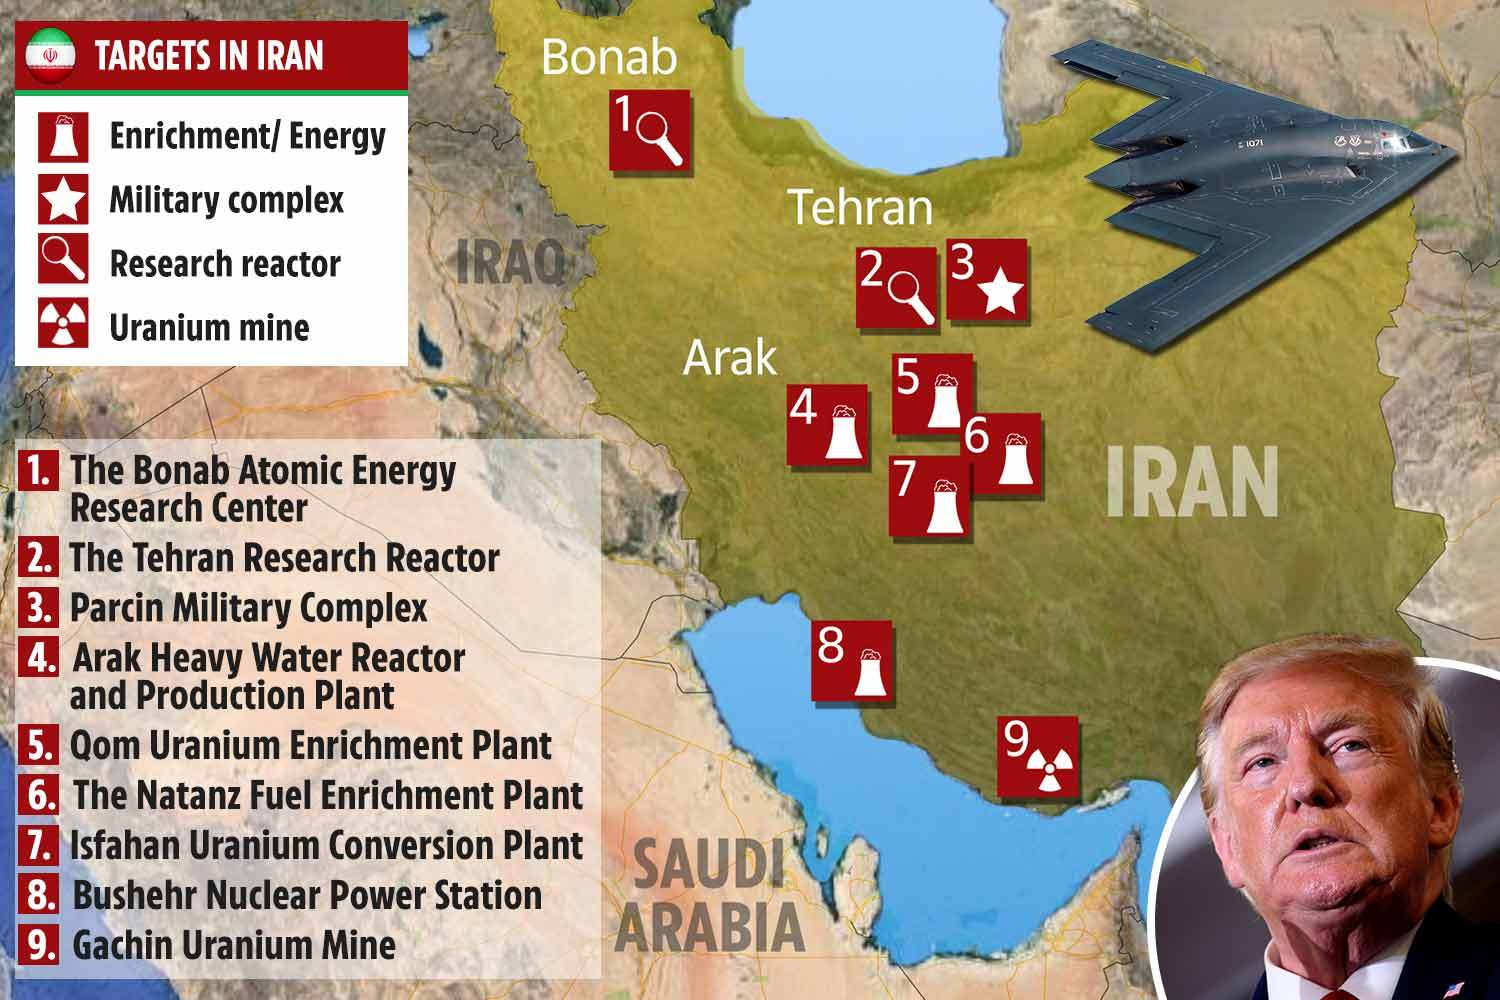 Leaked Pentagon 'war plan' shows how U.S. could destroy Iran overnight in shock and awe attack